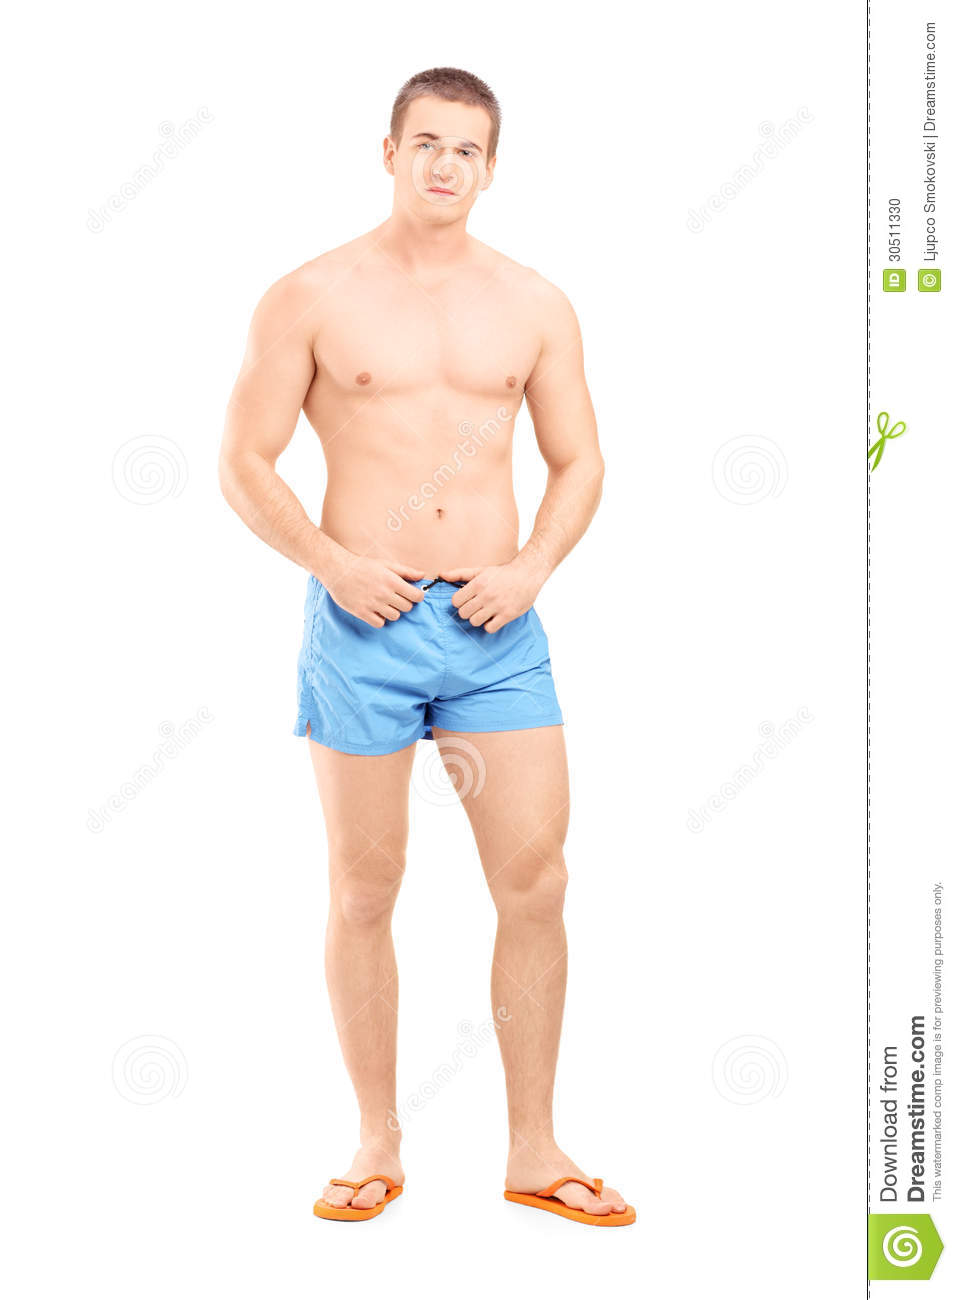 Full length portrait of a handsome muscular man posing in swimsuit